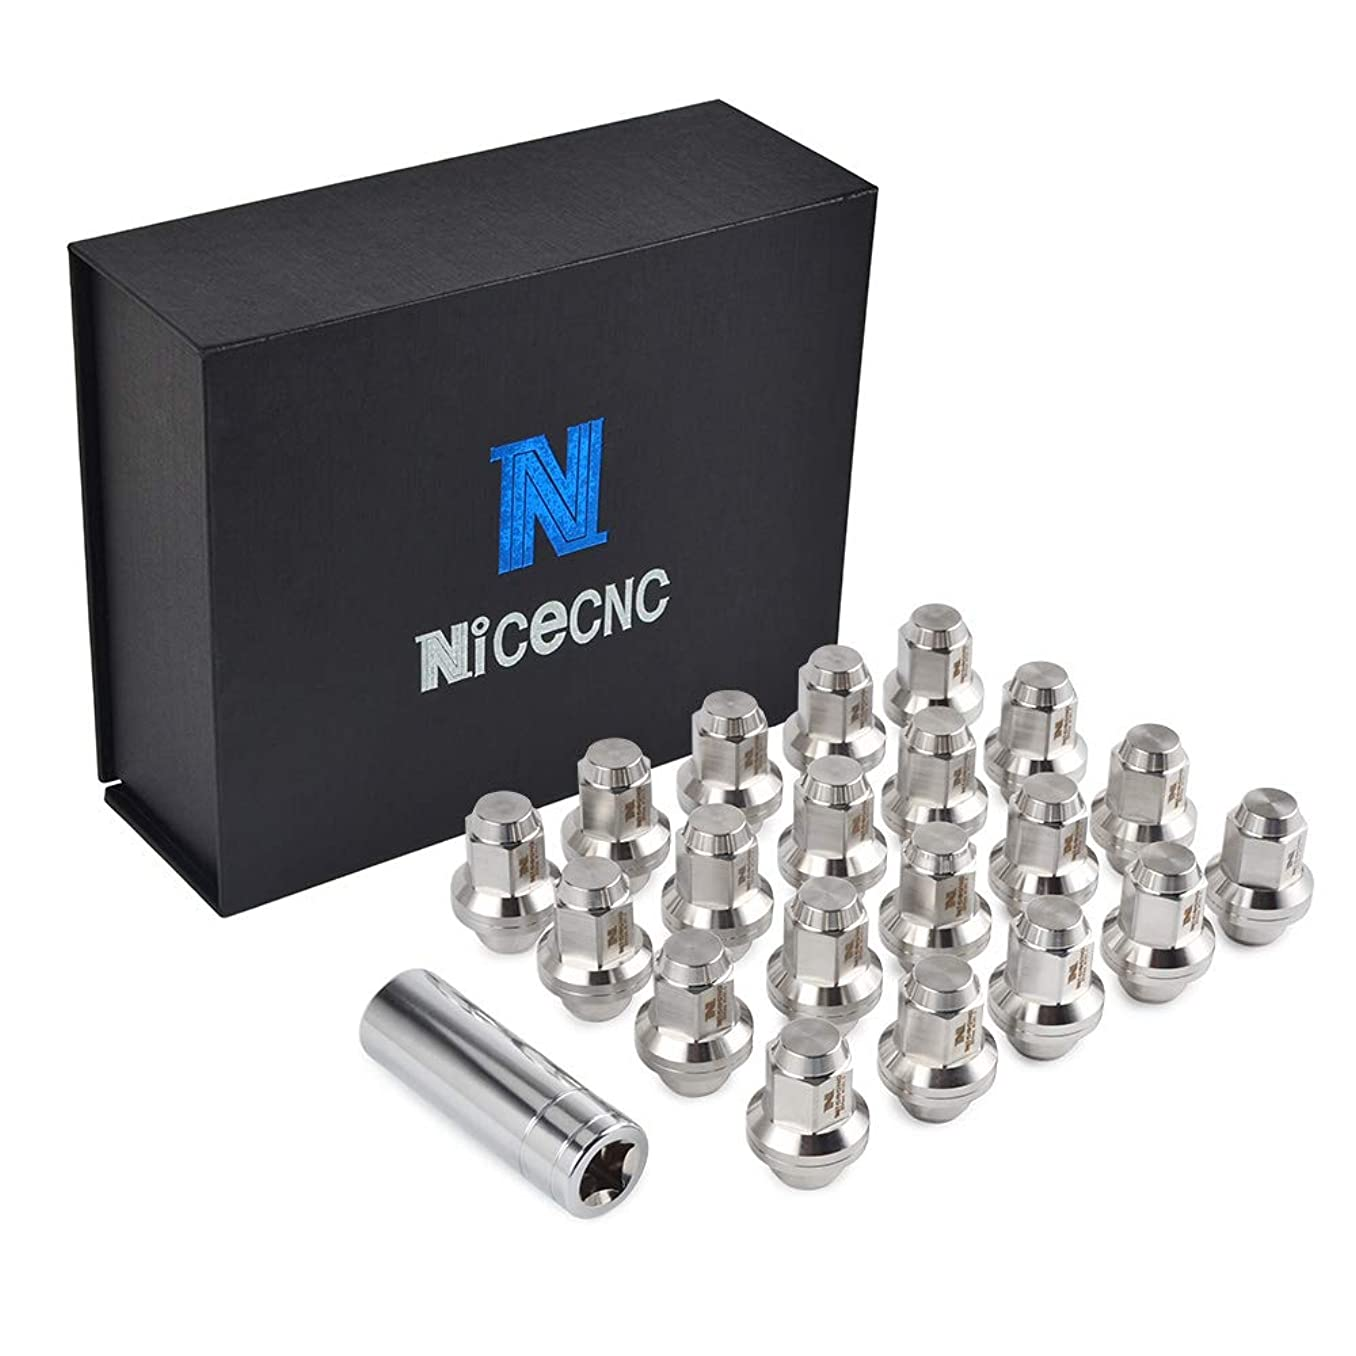 Nicecnc 20PCS 12x1.5MM Through-Hardened T304 Stainless Steel Anti-Rust,Corrosion Wheel Lug Nuts with Washer Closed End & Tool Replace T-oyota L-exus Scion Pontiac Mag Seat Wheels